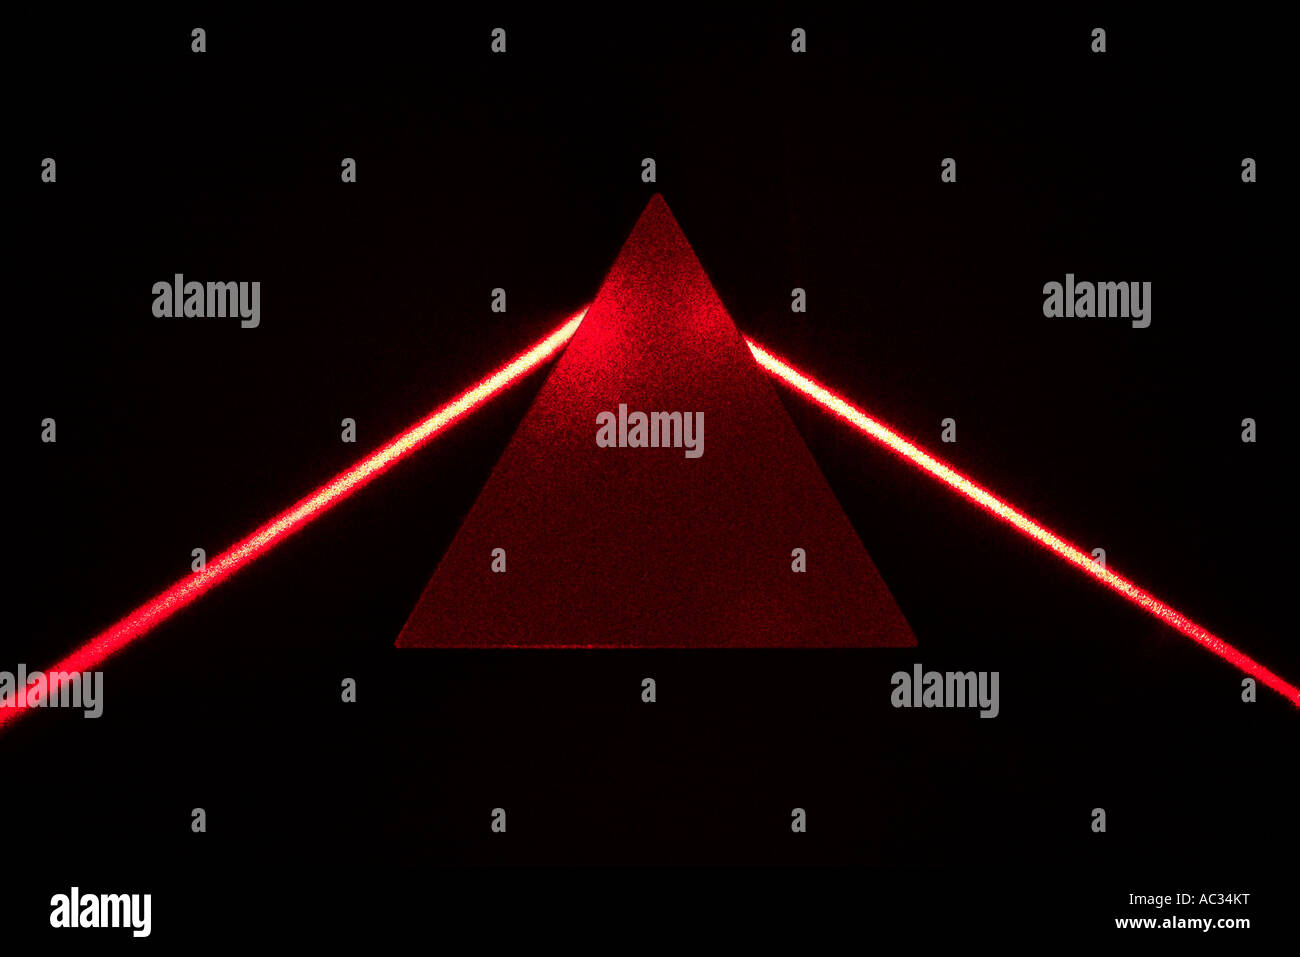 Equilateral prism deflecting red laser beam - Stock Image